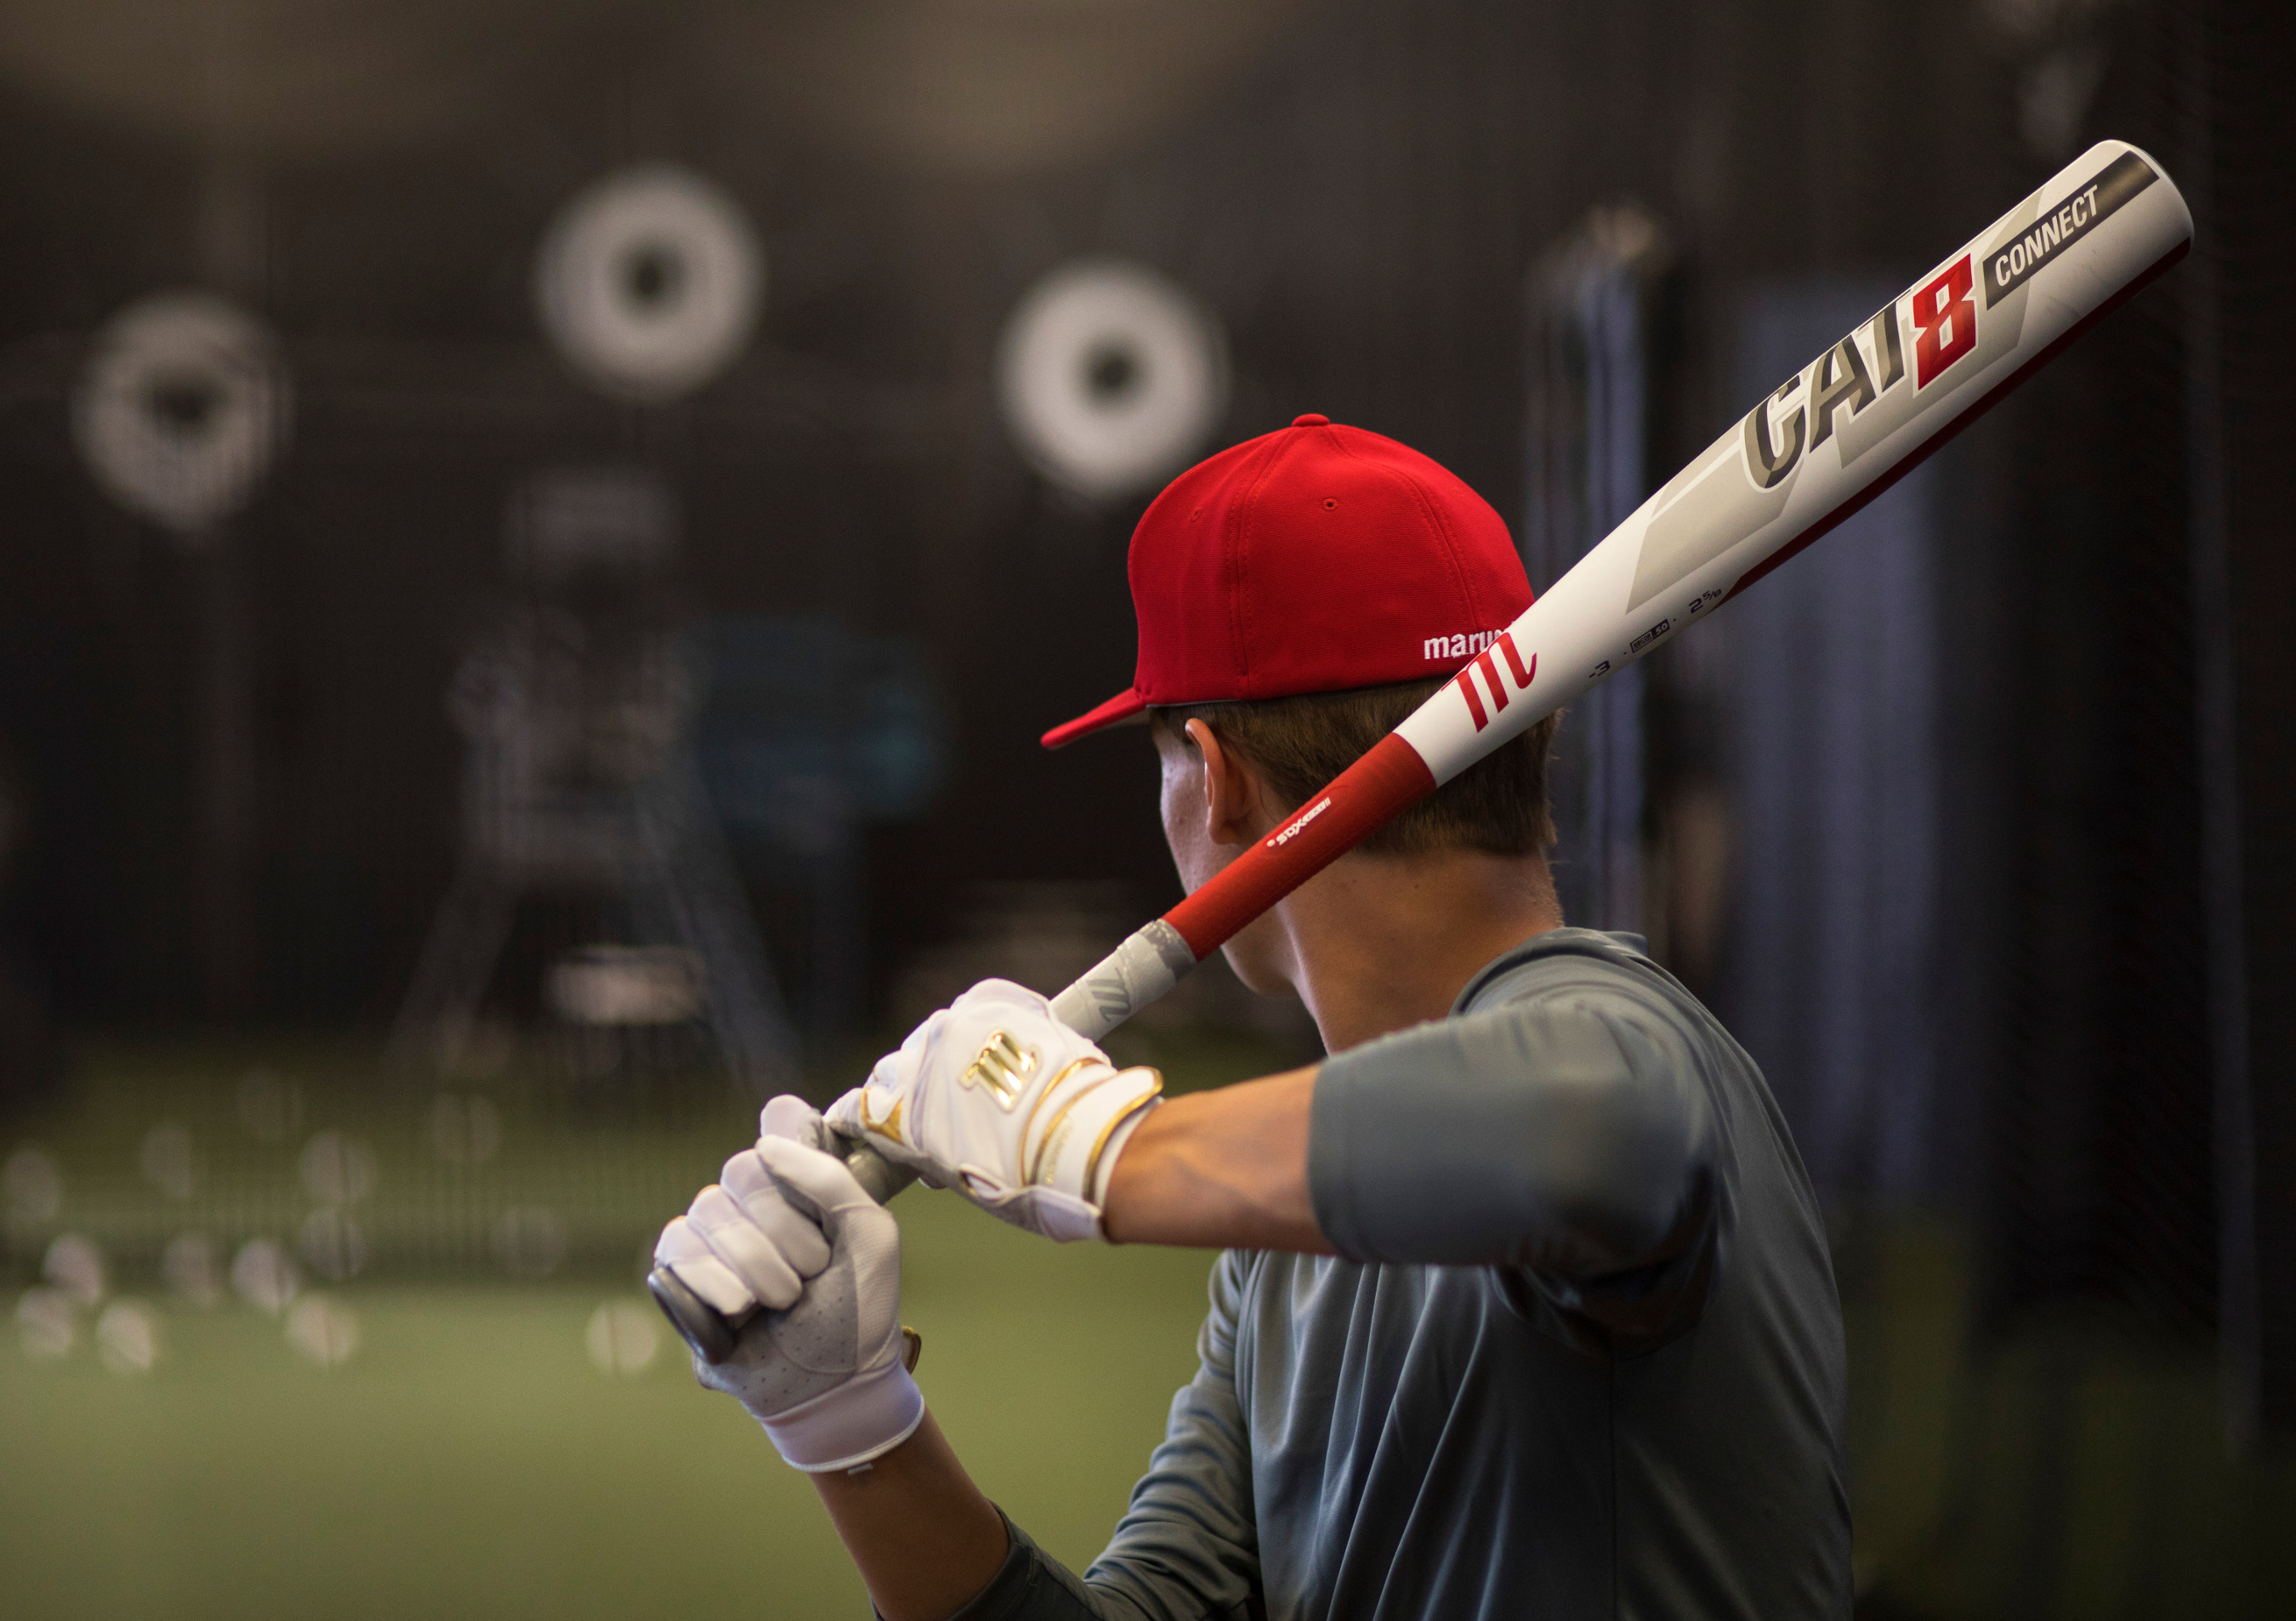 Marucci CAT8 Bat the Latest in Technology